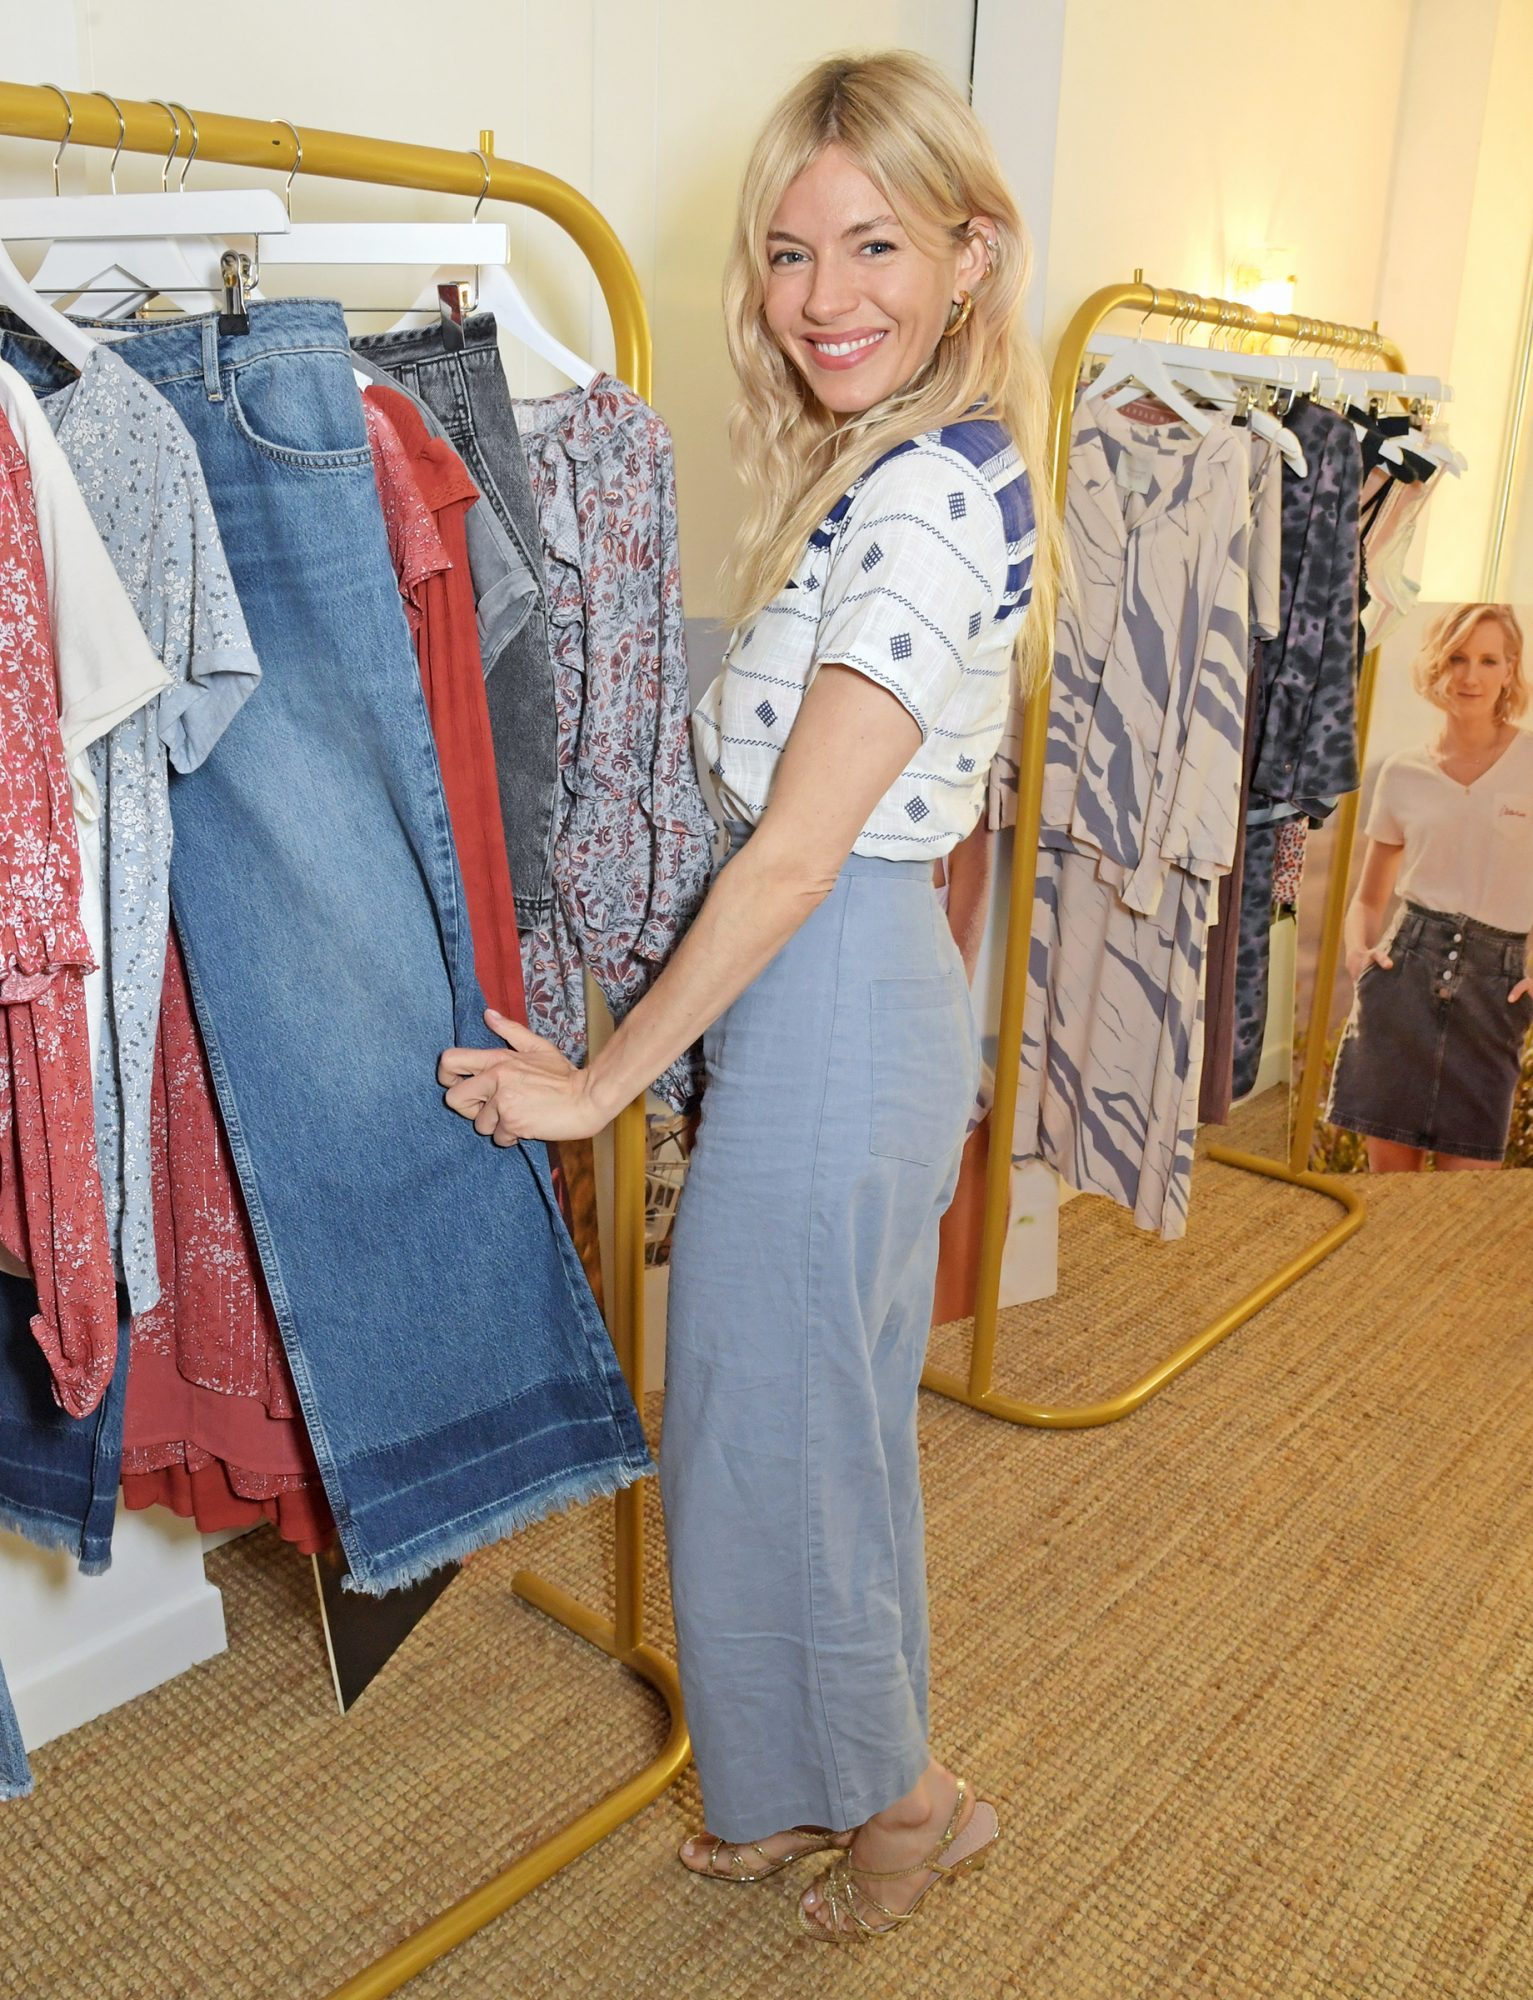 Sienna Miller attends the launch of the Savannah Miller x Next collection at SohoWorks on June 10, 2021 in London, England